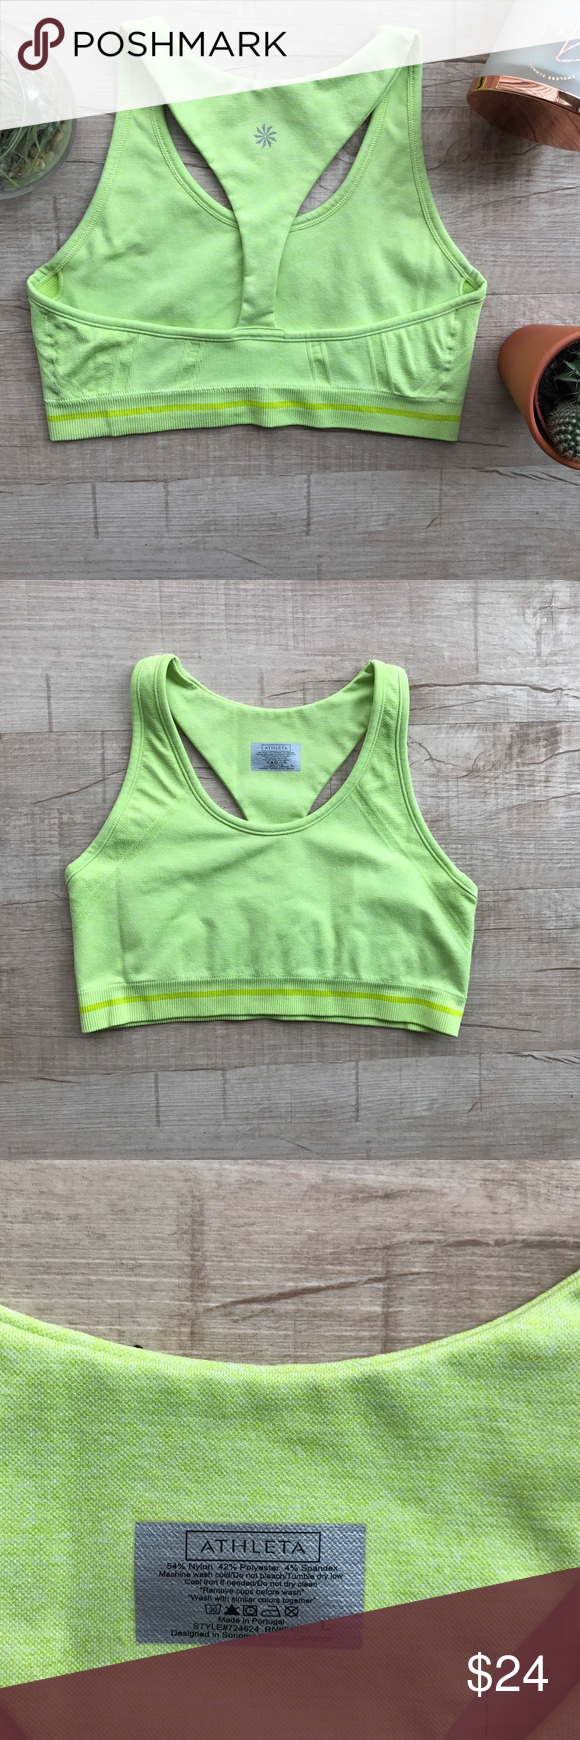 """Athleta Fastest Track Bra * lime green/bright yellow  * 54% nylon, 42% polyester, 4% spandex * bust( laid flat, on one side) - 15"""" * length - 12.5"""" * great used condition! Athleta Tops"""